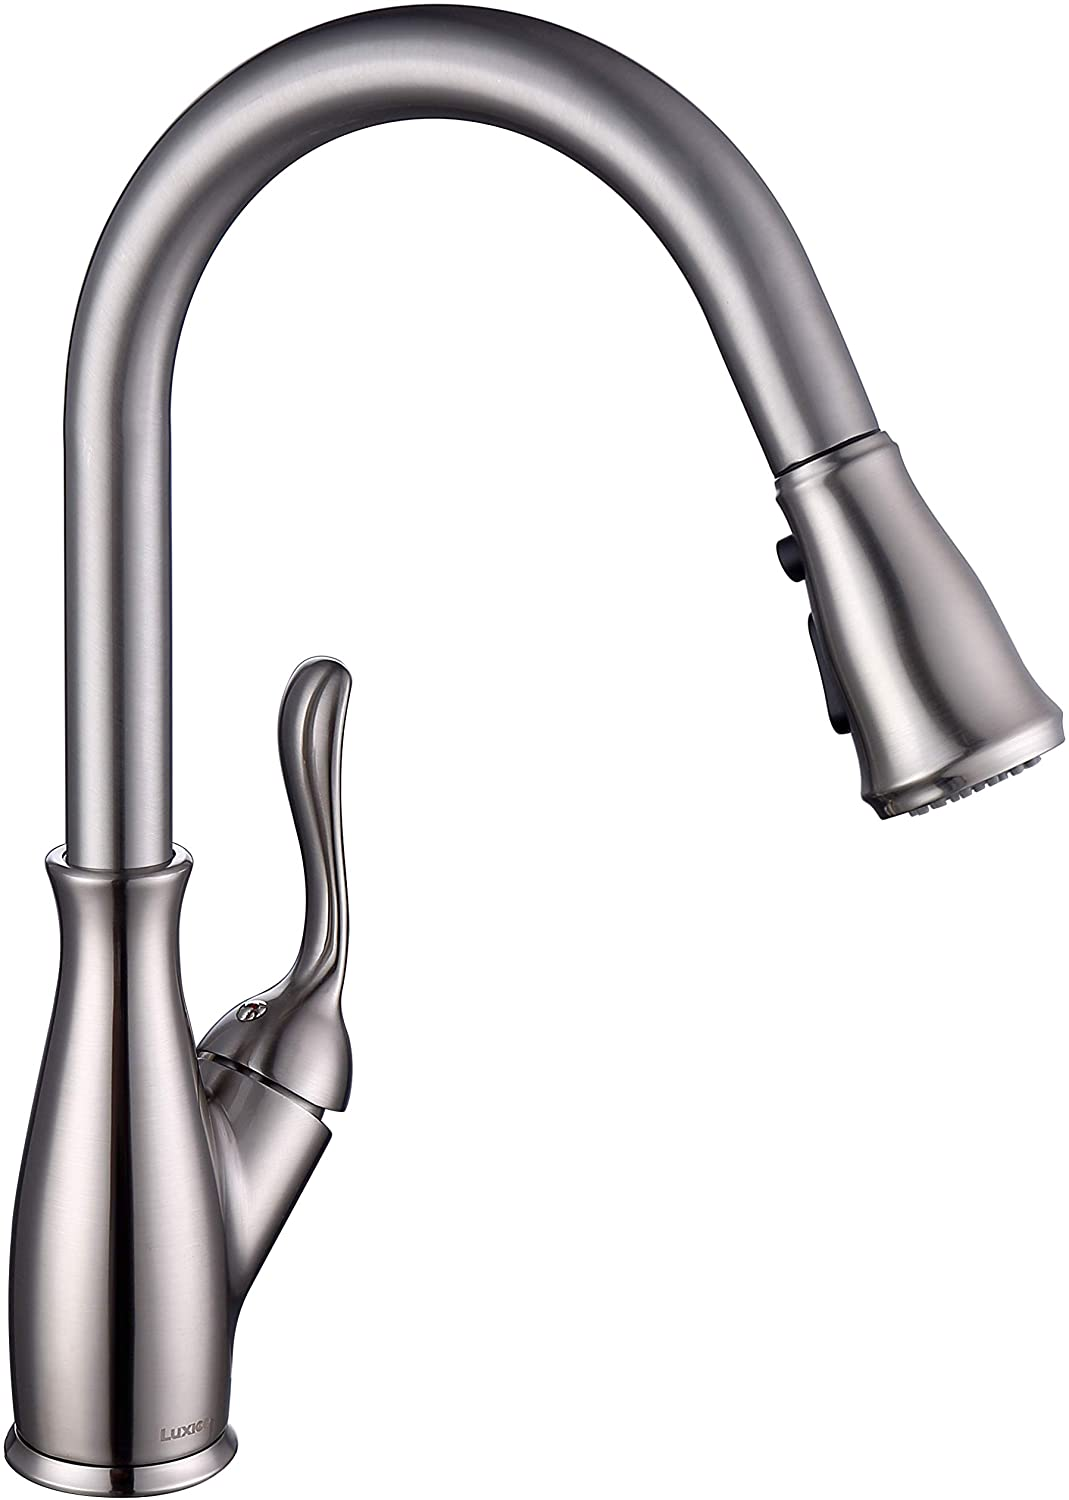 Luxice Faucet Pull Down Kitchen Faucet with Pull Out Sprayer, Kitchen Sink Faucet with Deck Plate, Faucets for Kitchen Sinks, Single-Handle, Pull Down Spray Head, Stainless Steel Brushed Nickel